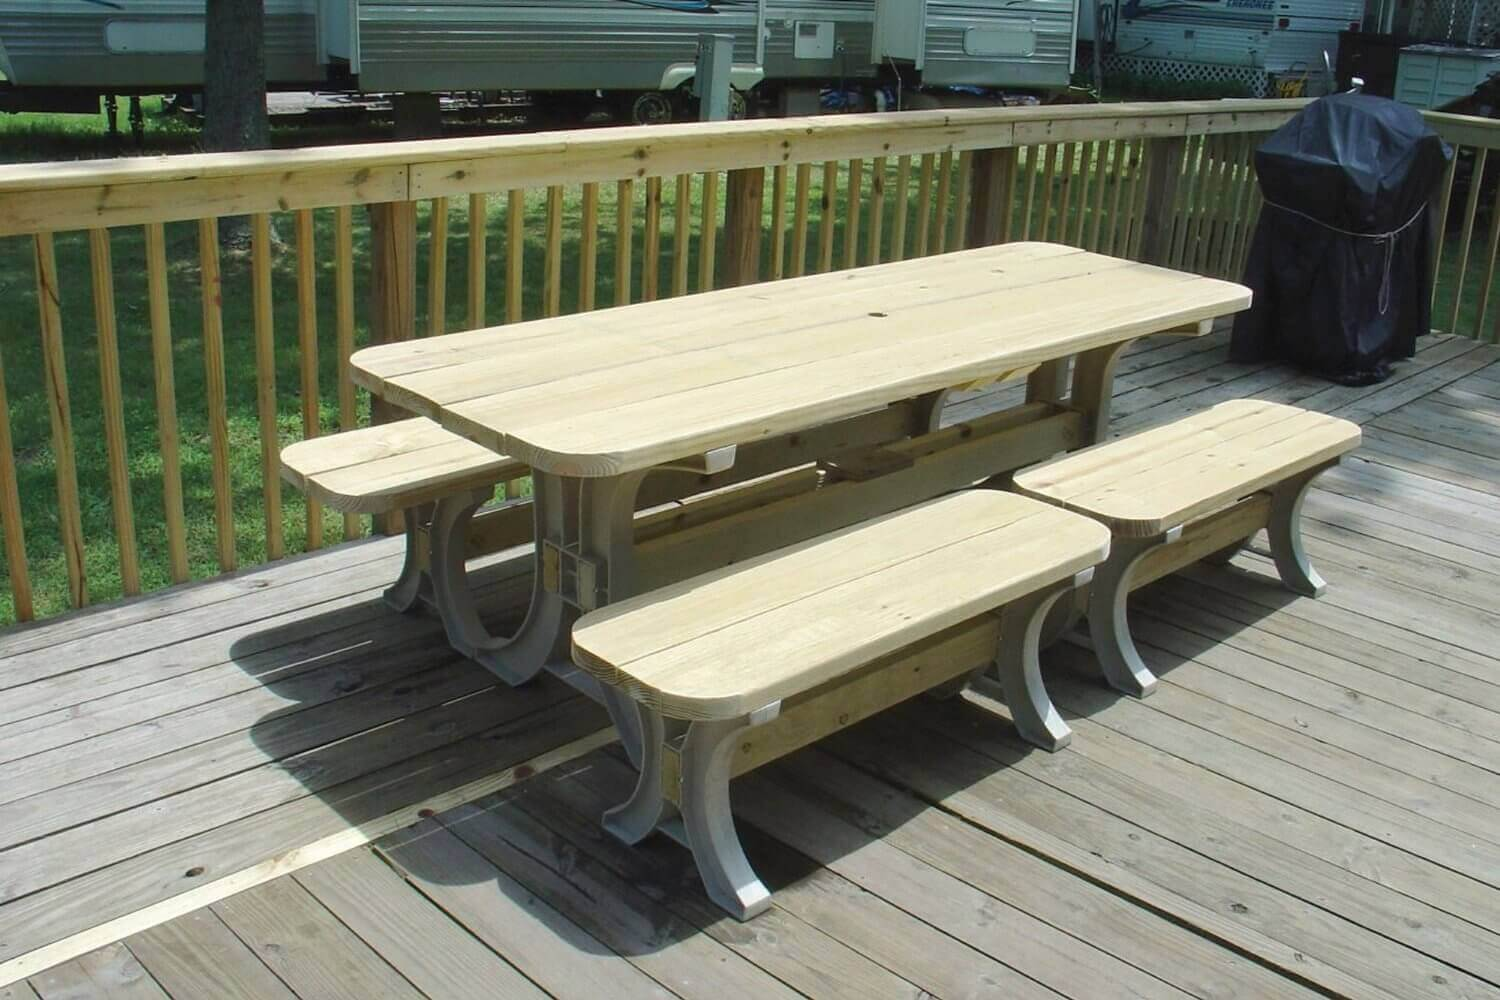 This picnic table has a fantastic and classic look. The table is elongated for more space and there are two sets of benches to accommodate many people. This lovely table is in a lower cost range and has great value.